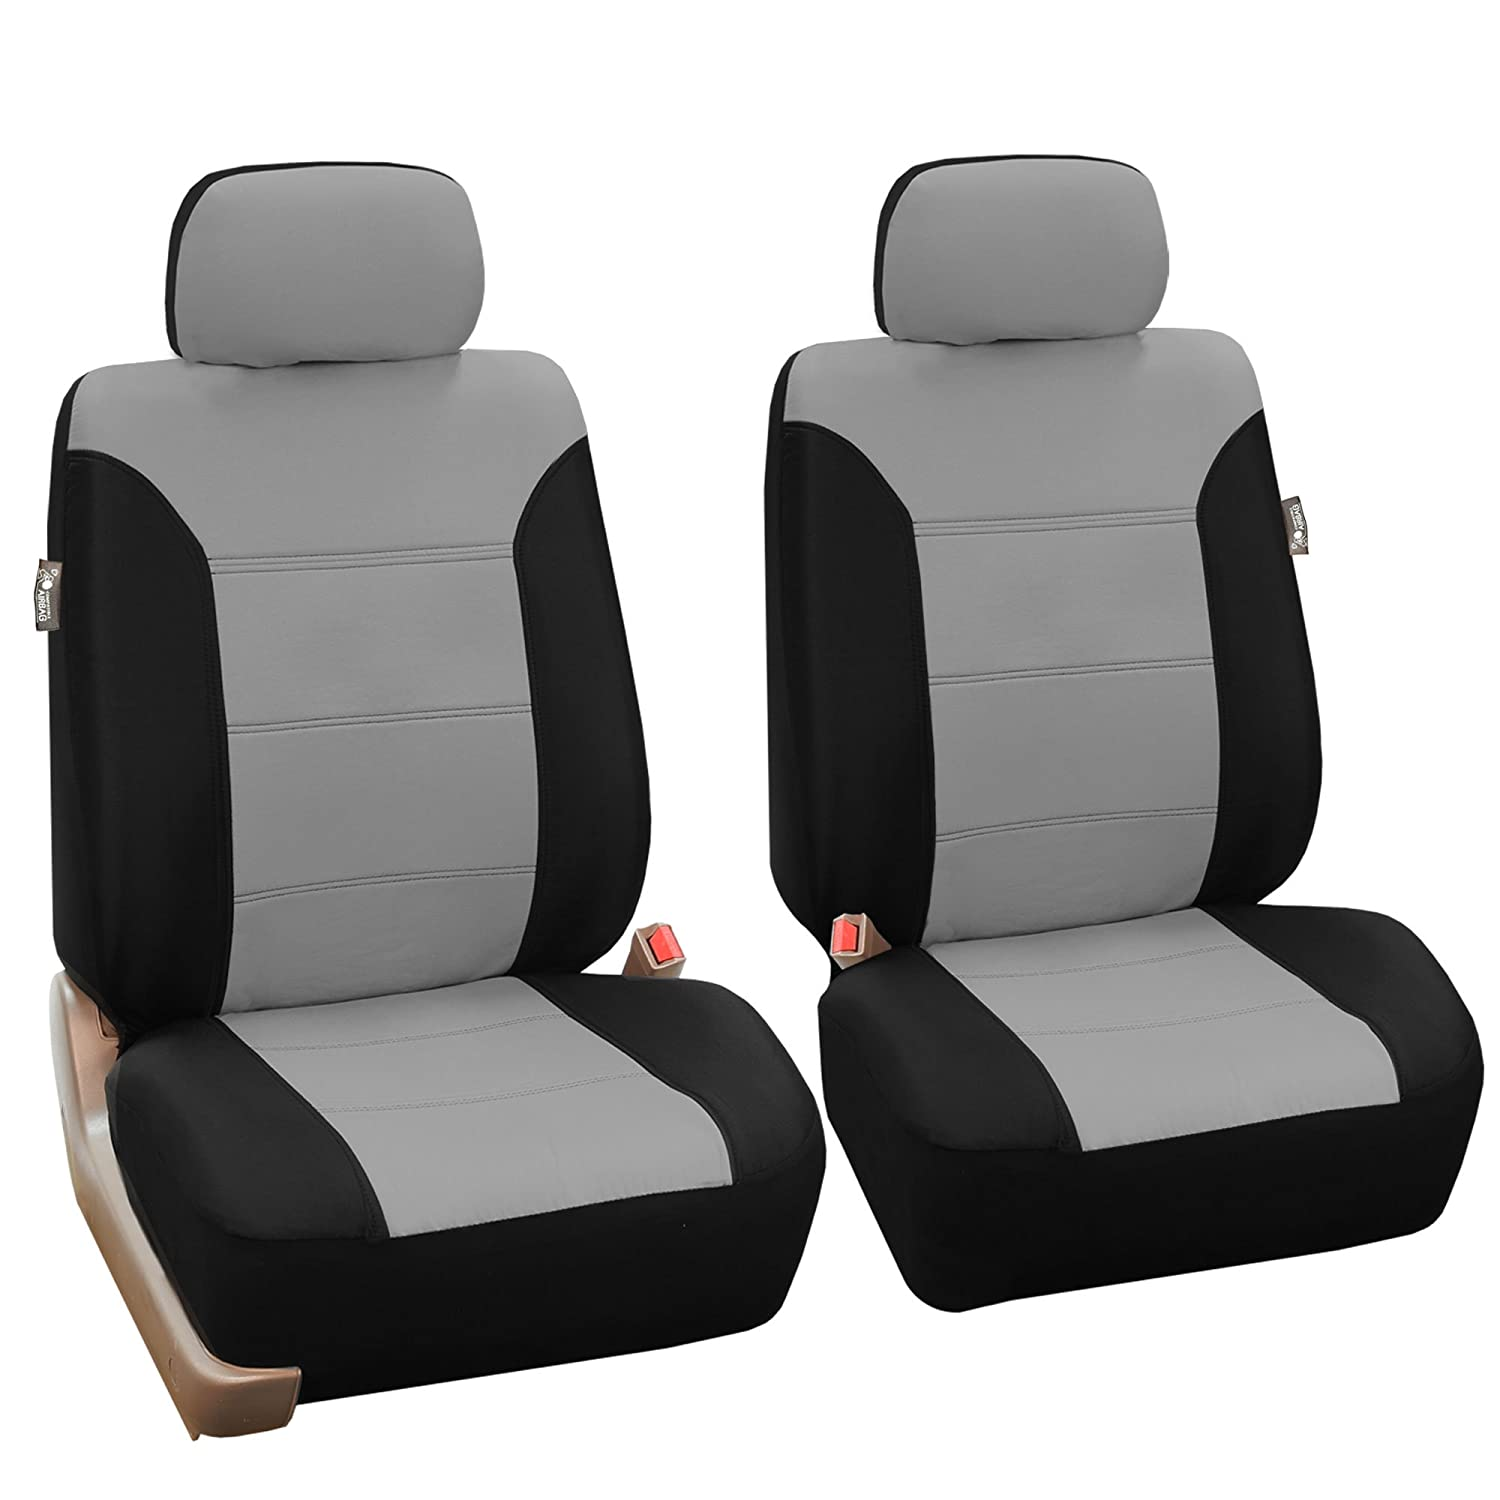 Airbag Ready and Split Bench Full Set FH Group FB064GRAY115 Gray Timeless Cross Weave Seat Cover